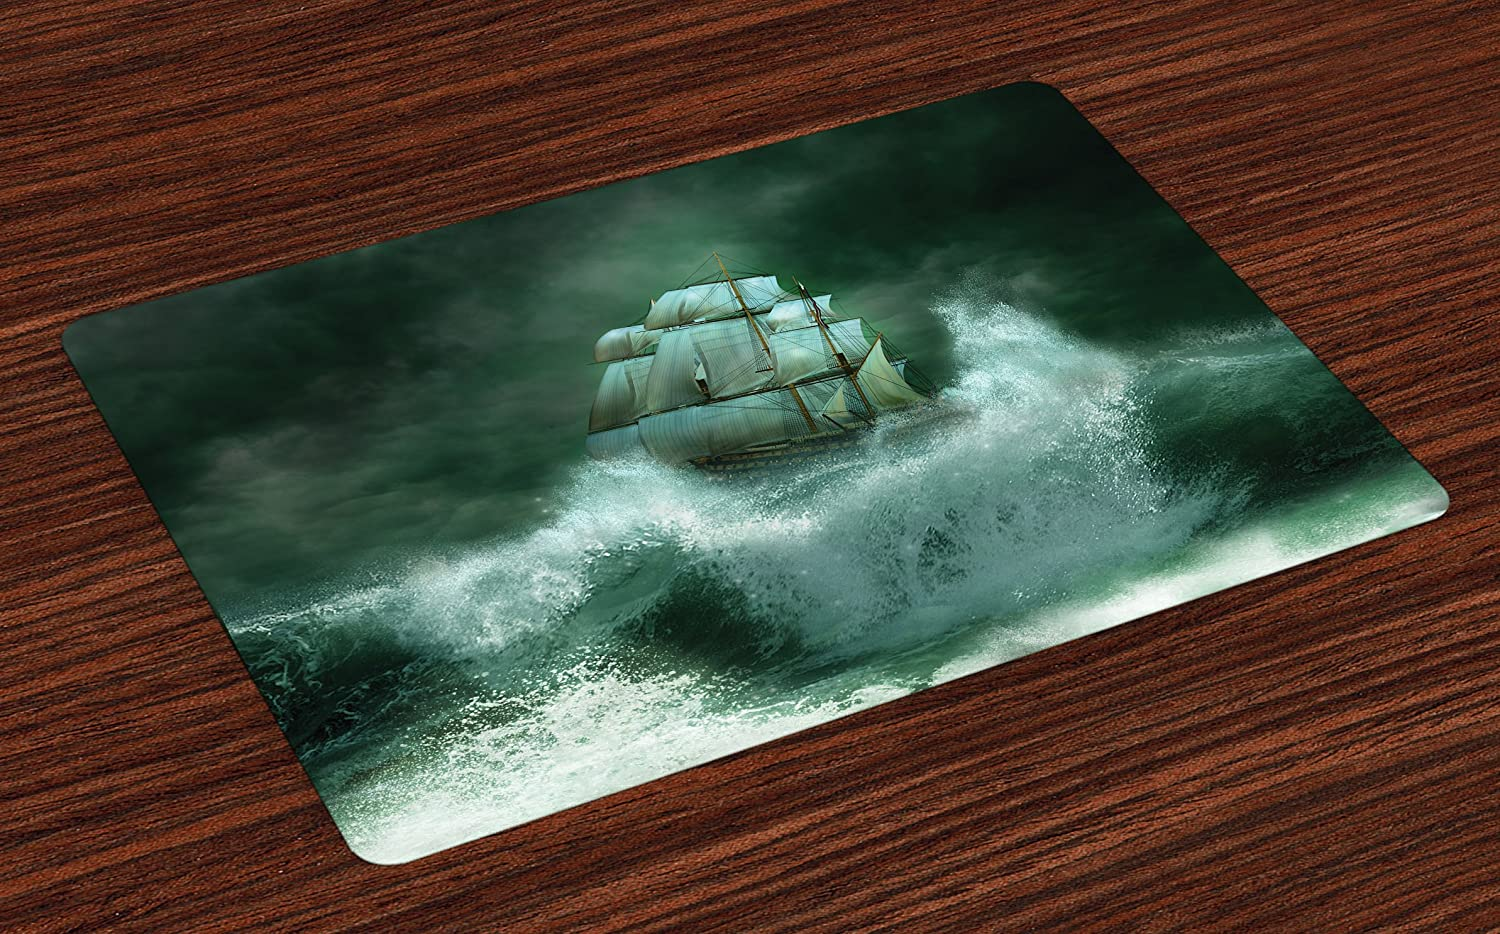 Lunarable Nautical Place Mats Set of 4, Old Vessel with The Giant Waves in Thunderstorm Pirates Adventure Tempest Paint Print, Washable Fabric Placemats for Dining Room Kitchen Table Decor, Green